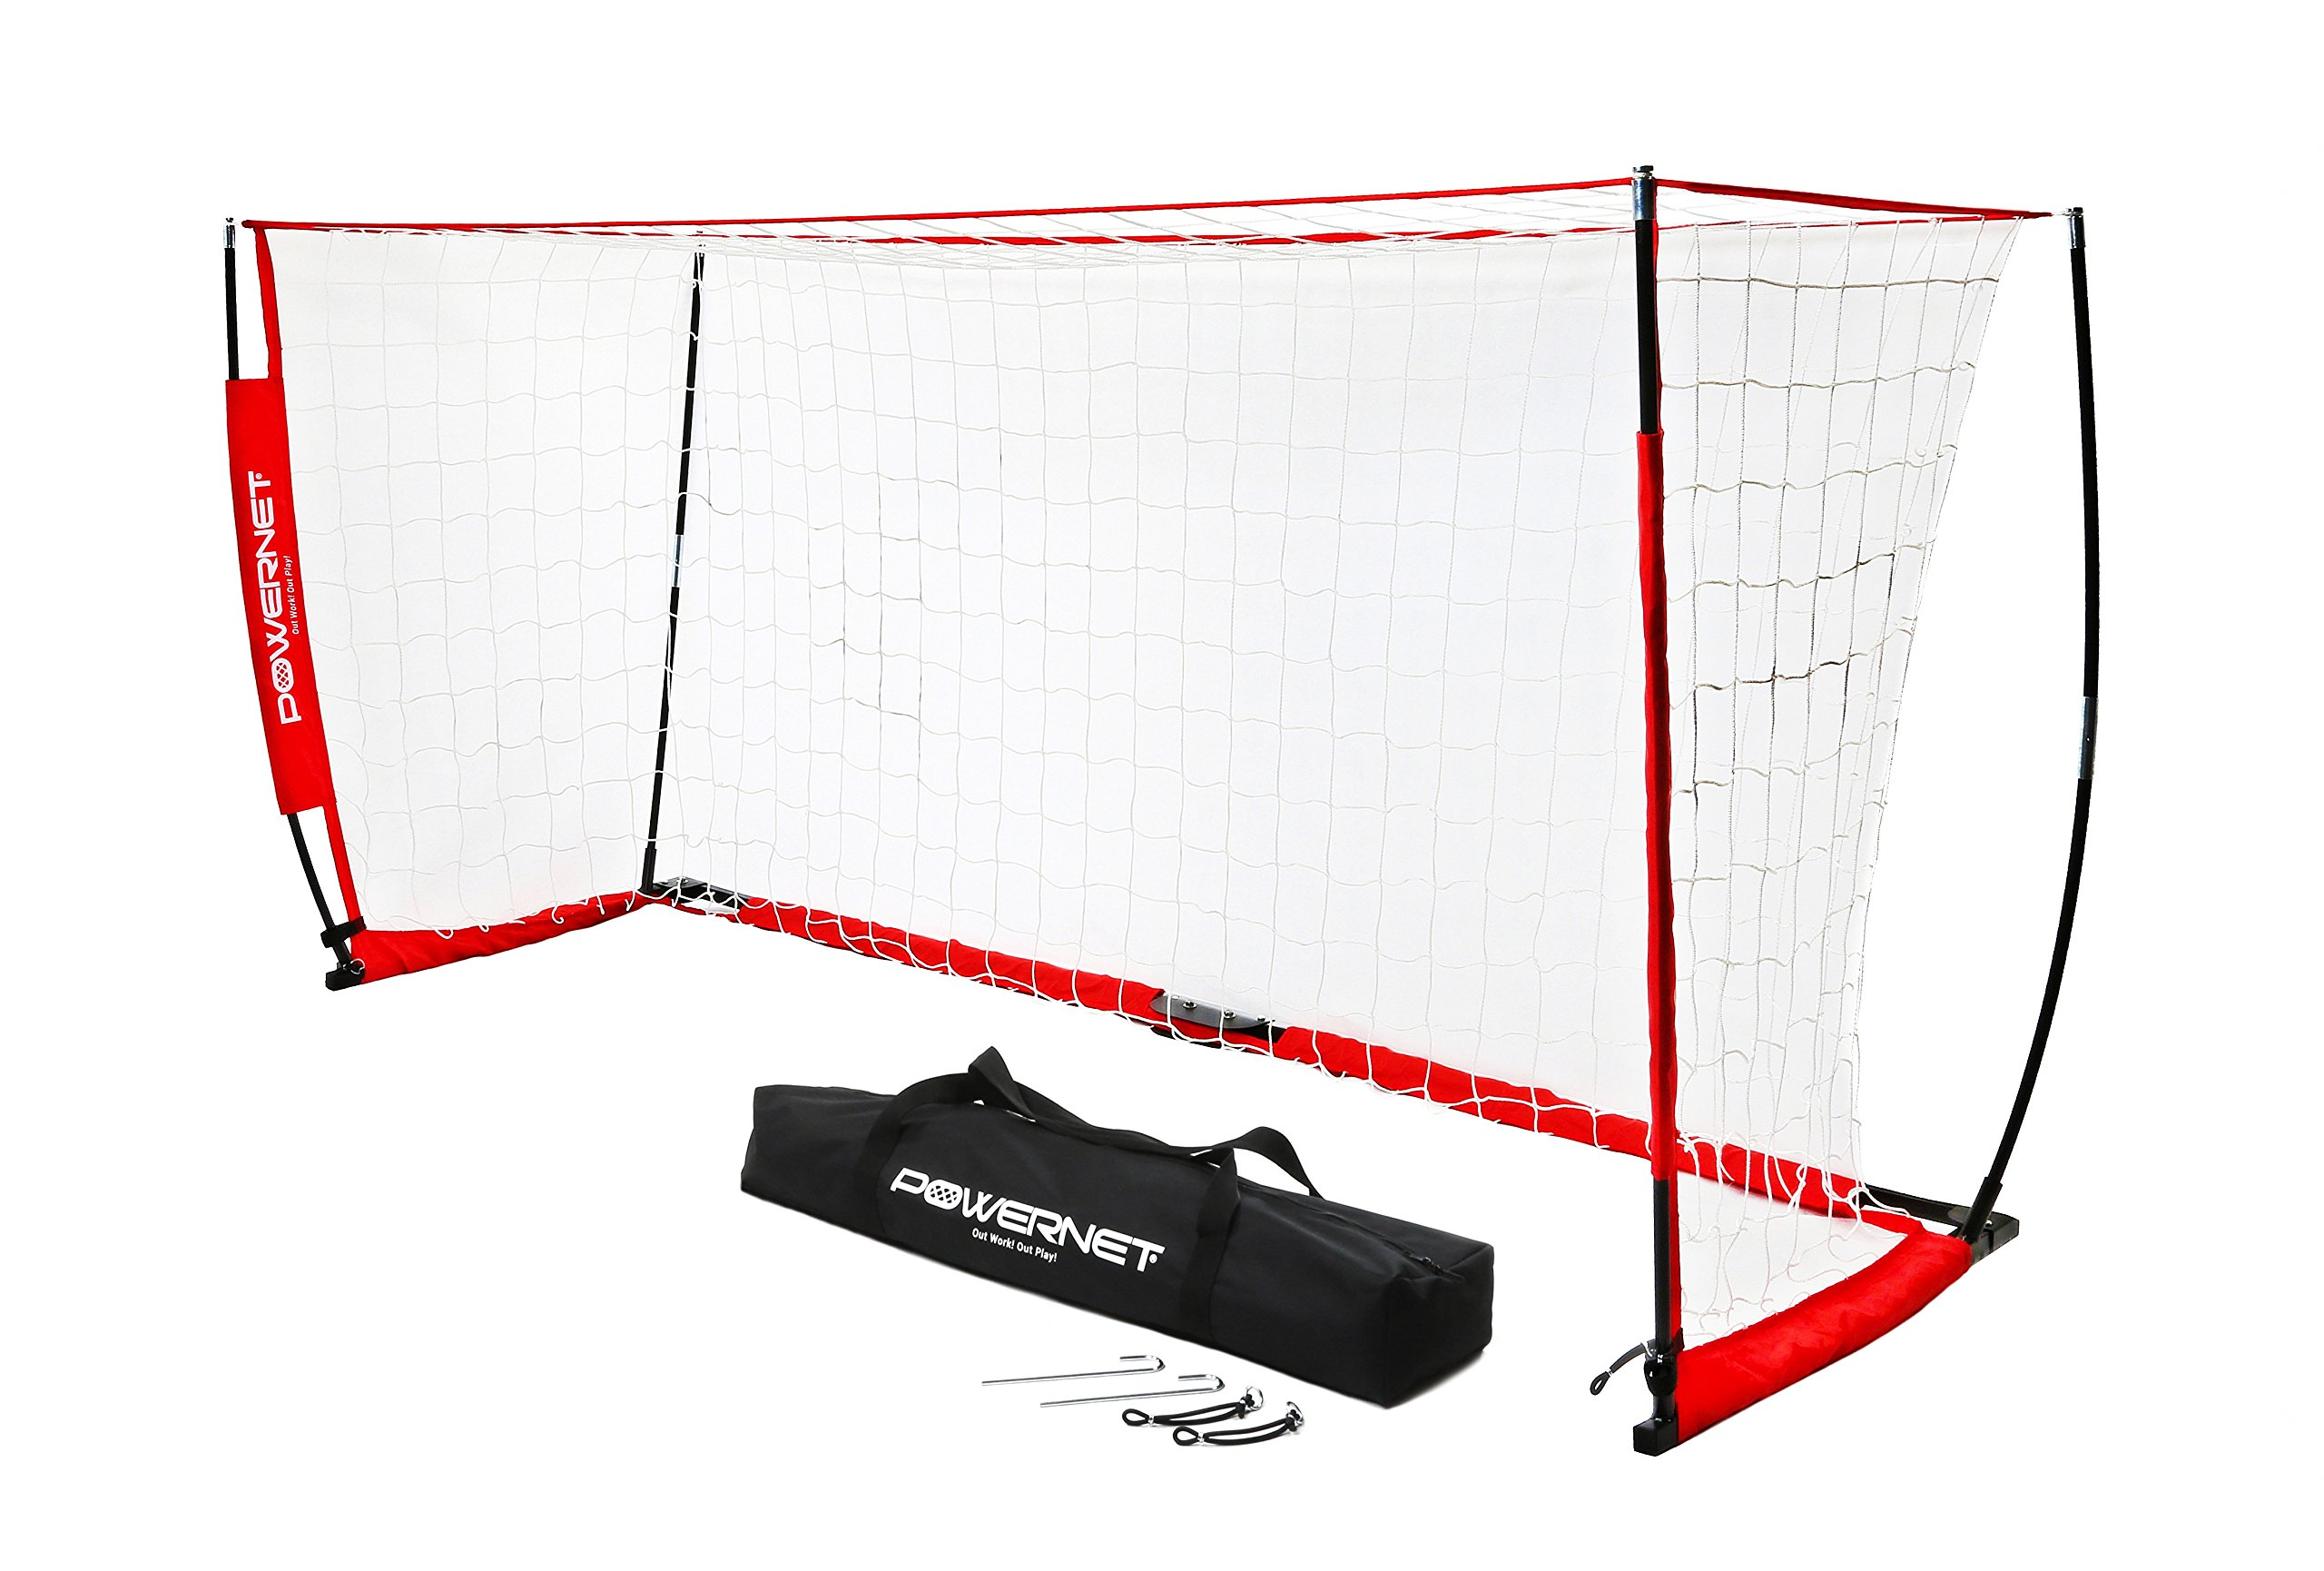 PowerNet Soccer Goal 12x6 Portable Bow Style Net by PowerNet (Image #2)